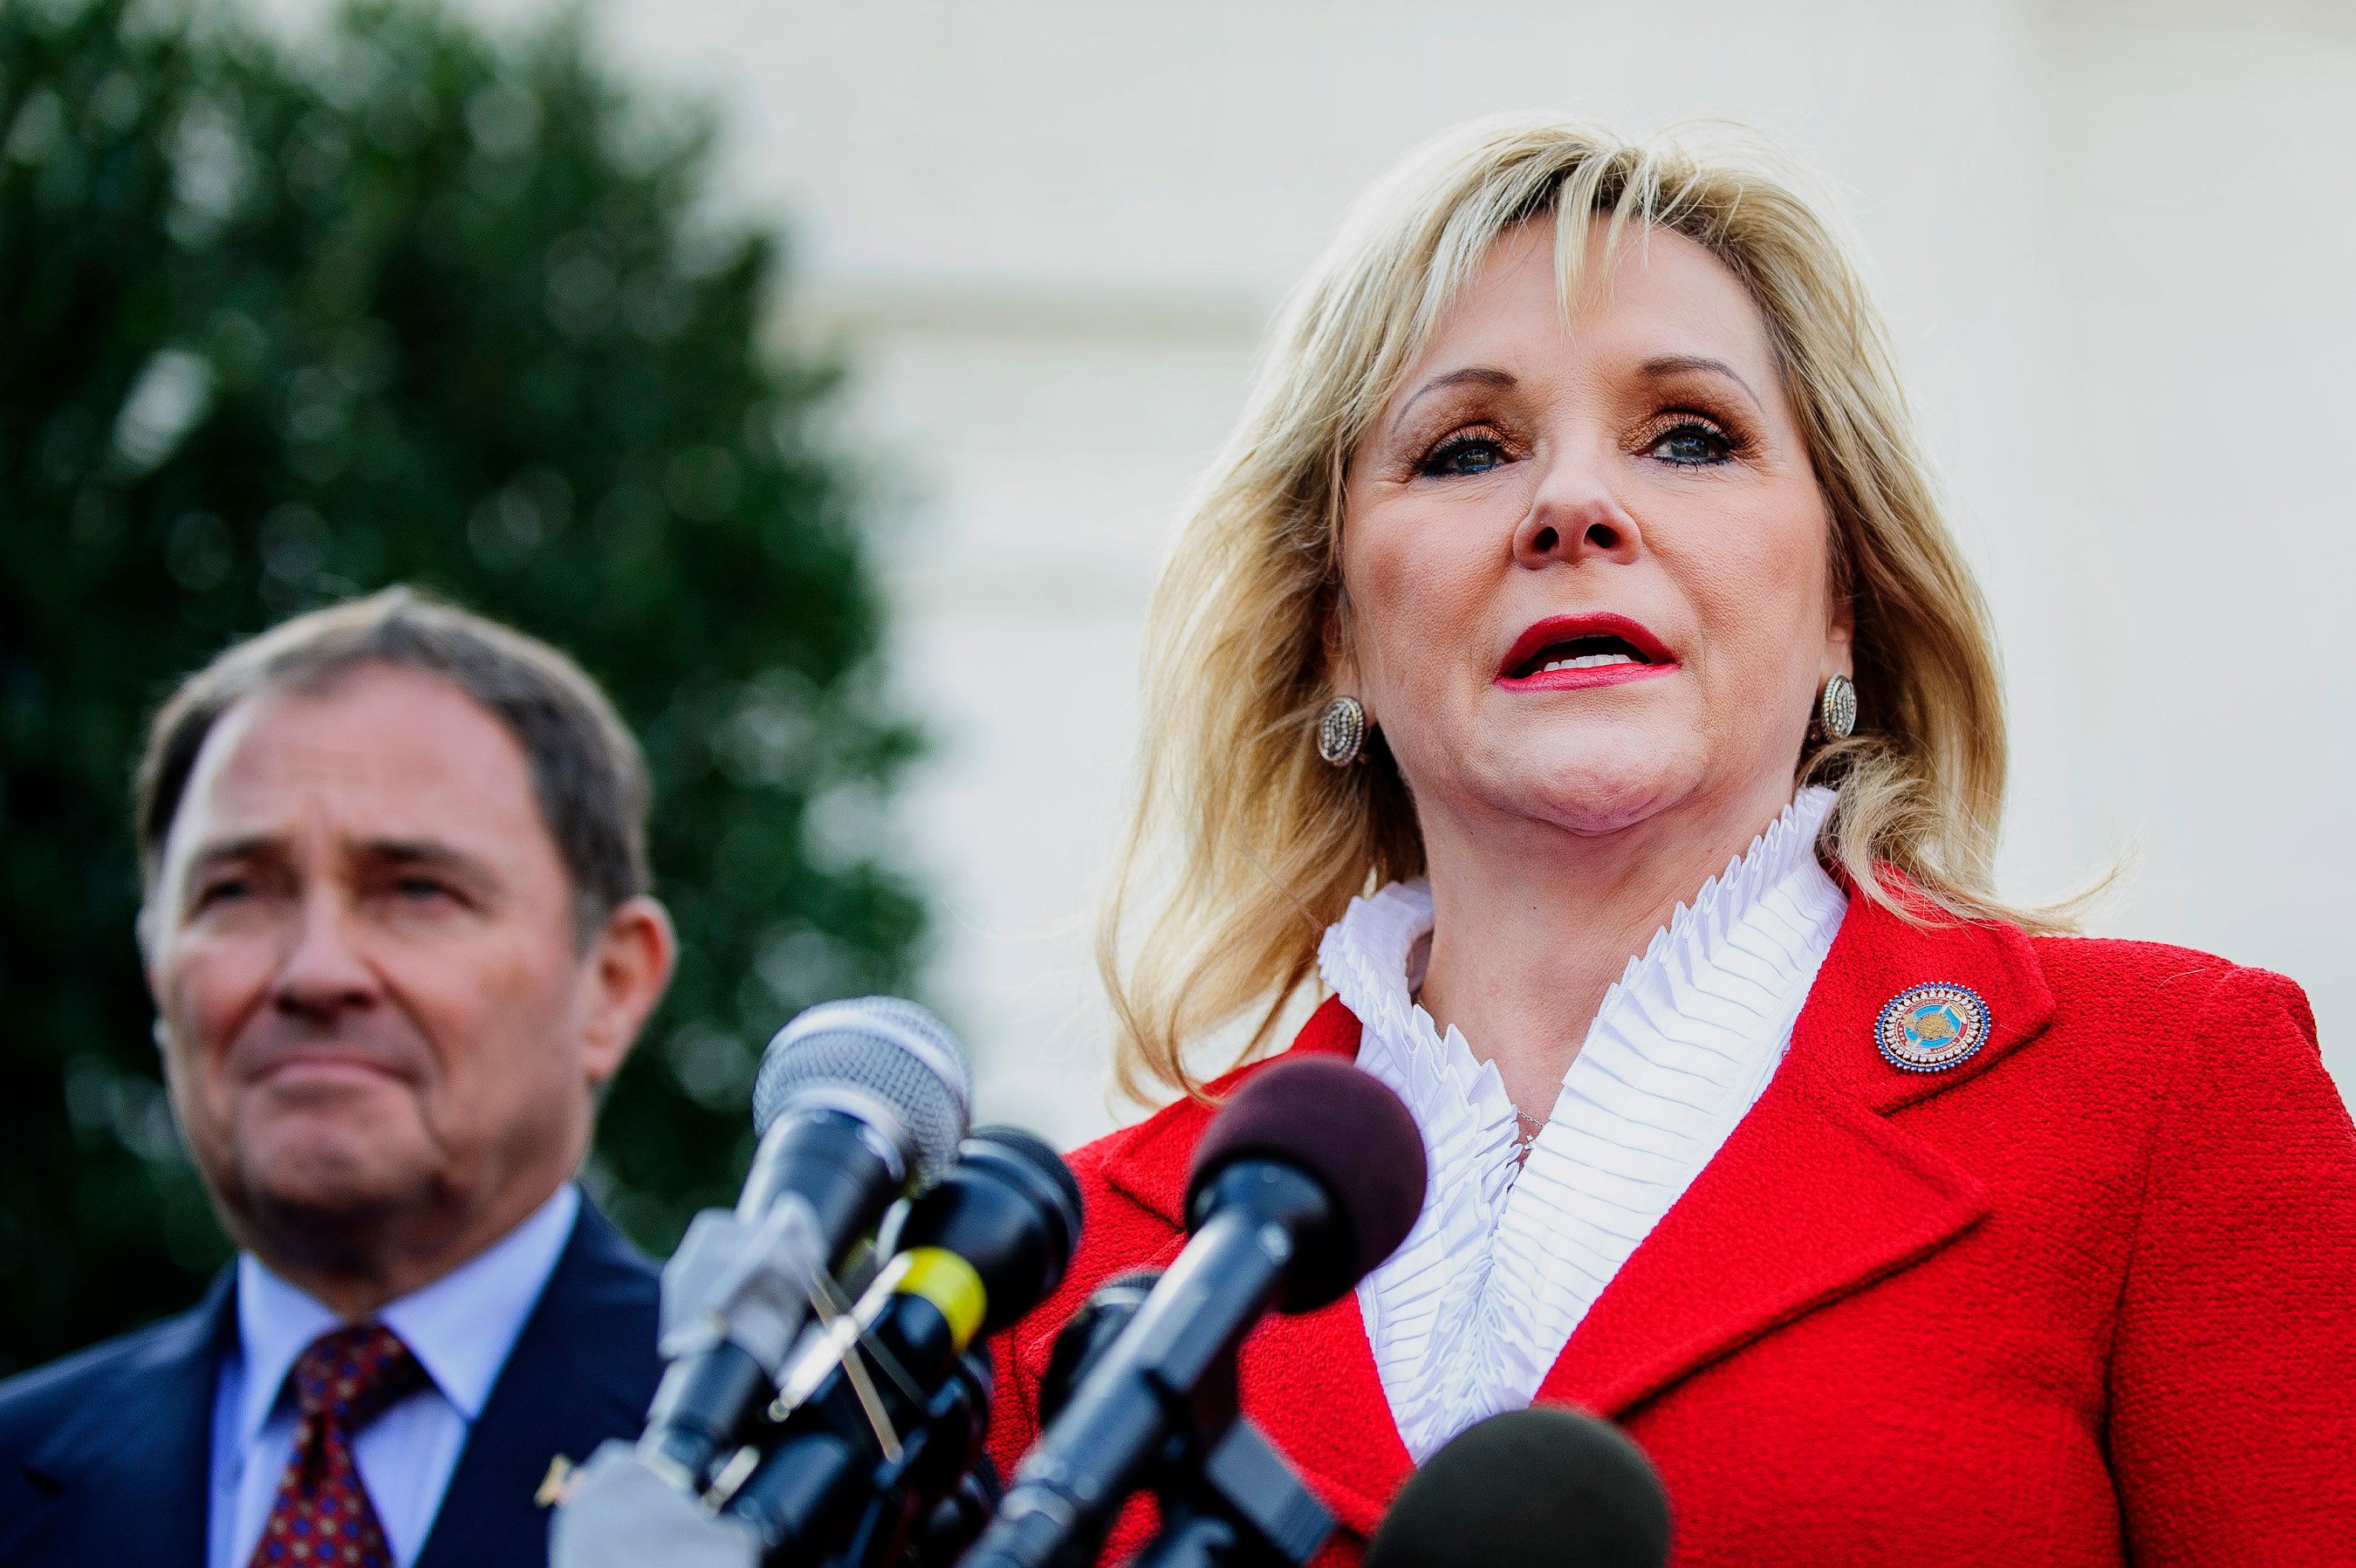 Republican Mary Fallin, governor of Oklahoma, right, speaks while while Republican Gary Herbert, governor of Utah, listens during a press conference after meeting with U.S. President Barack Obama in Washington, D.C., U.S., on Tuesday, Dec. 4, 2012. Negotiations over the so-called fiscal cliff are stalled as President Obama and Republicans trade offers on ways to avoid more than $600 billion in U.S. spending cuts and tax increases for 2013 that will start to take effect in January if Congress doesn't act. Photographer: Andrew Harrer/Bloomberg via Getty Images